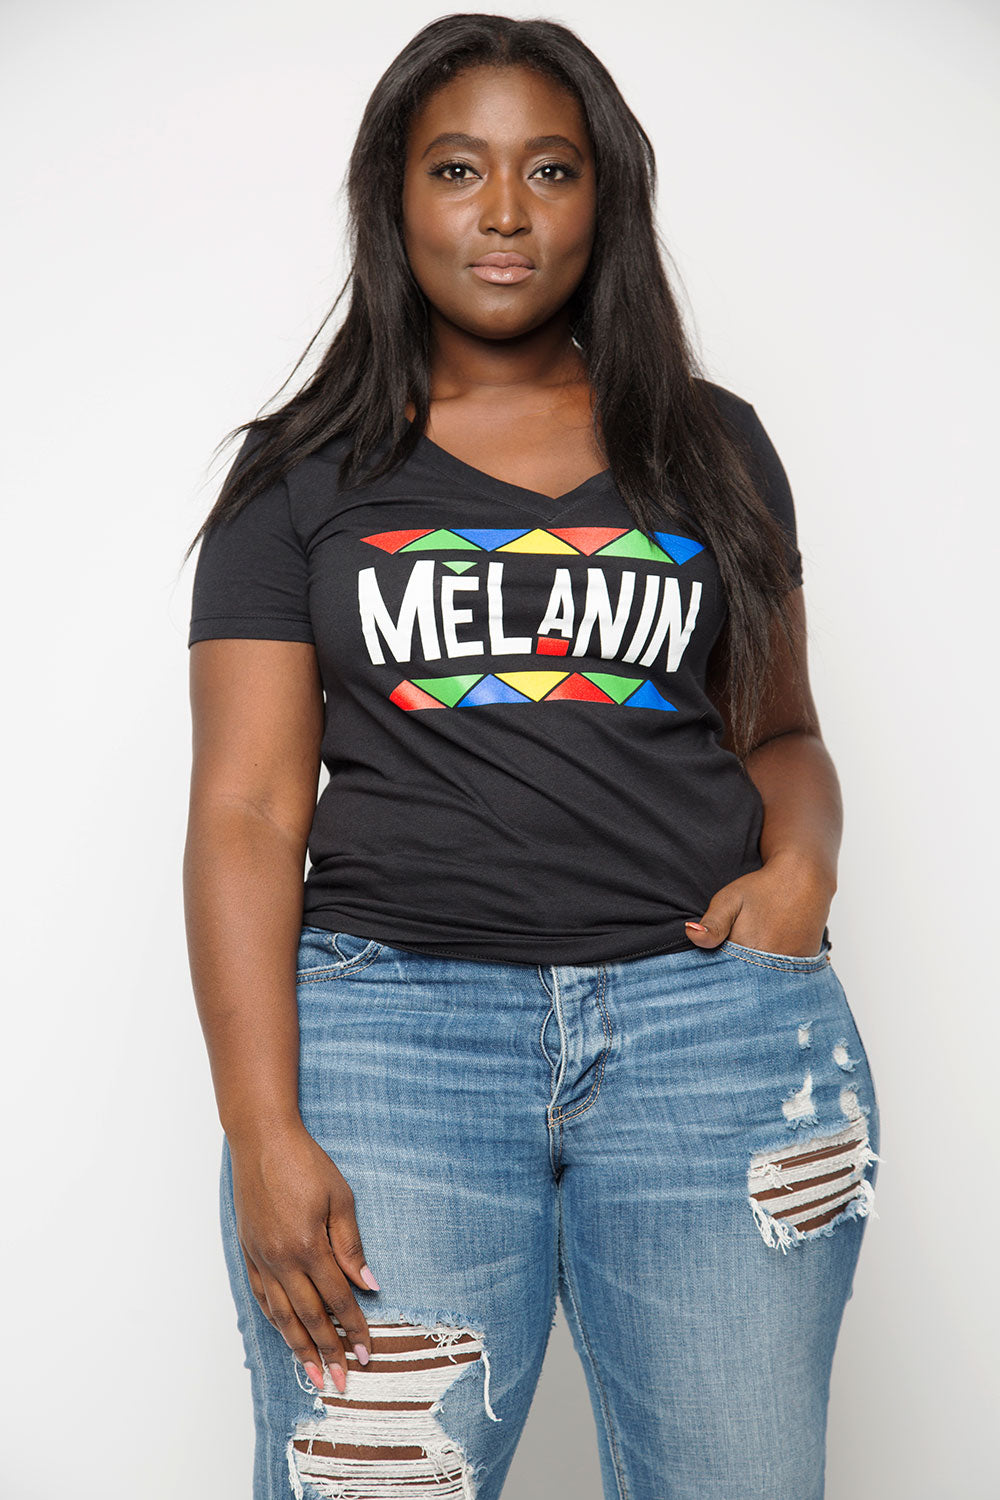 Melanin V-Neck Shirt in Black - Trunk Series, LLC